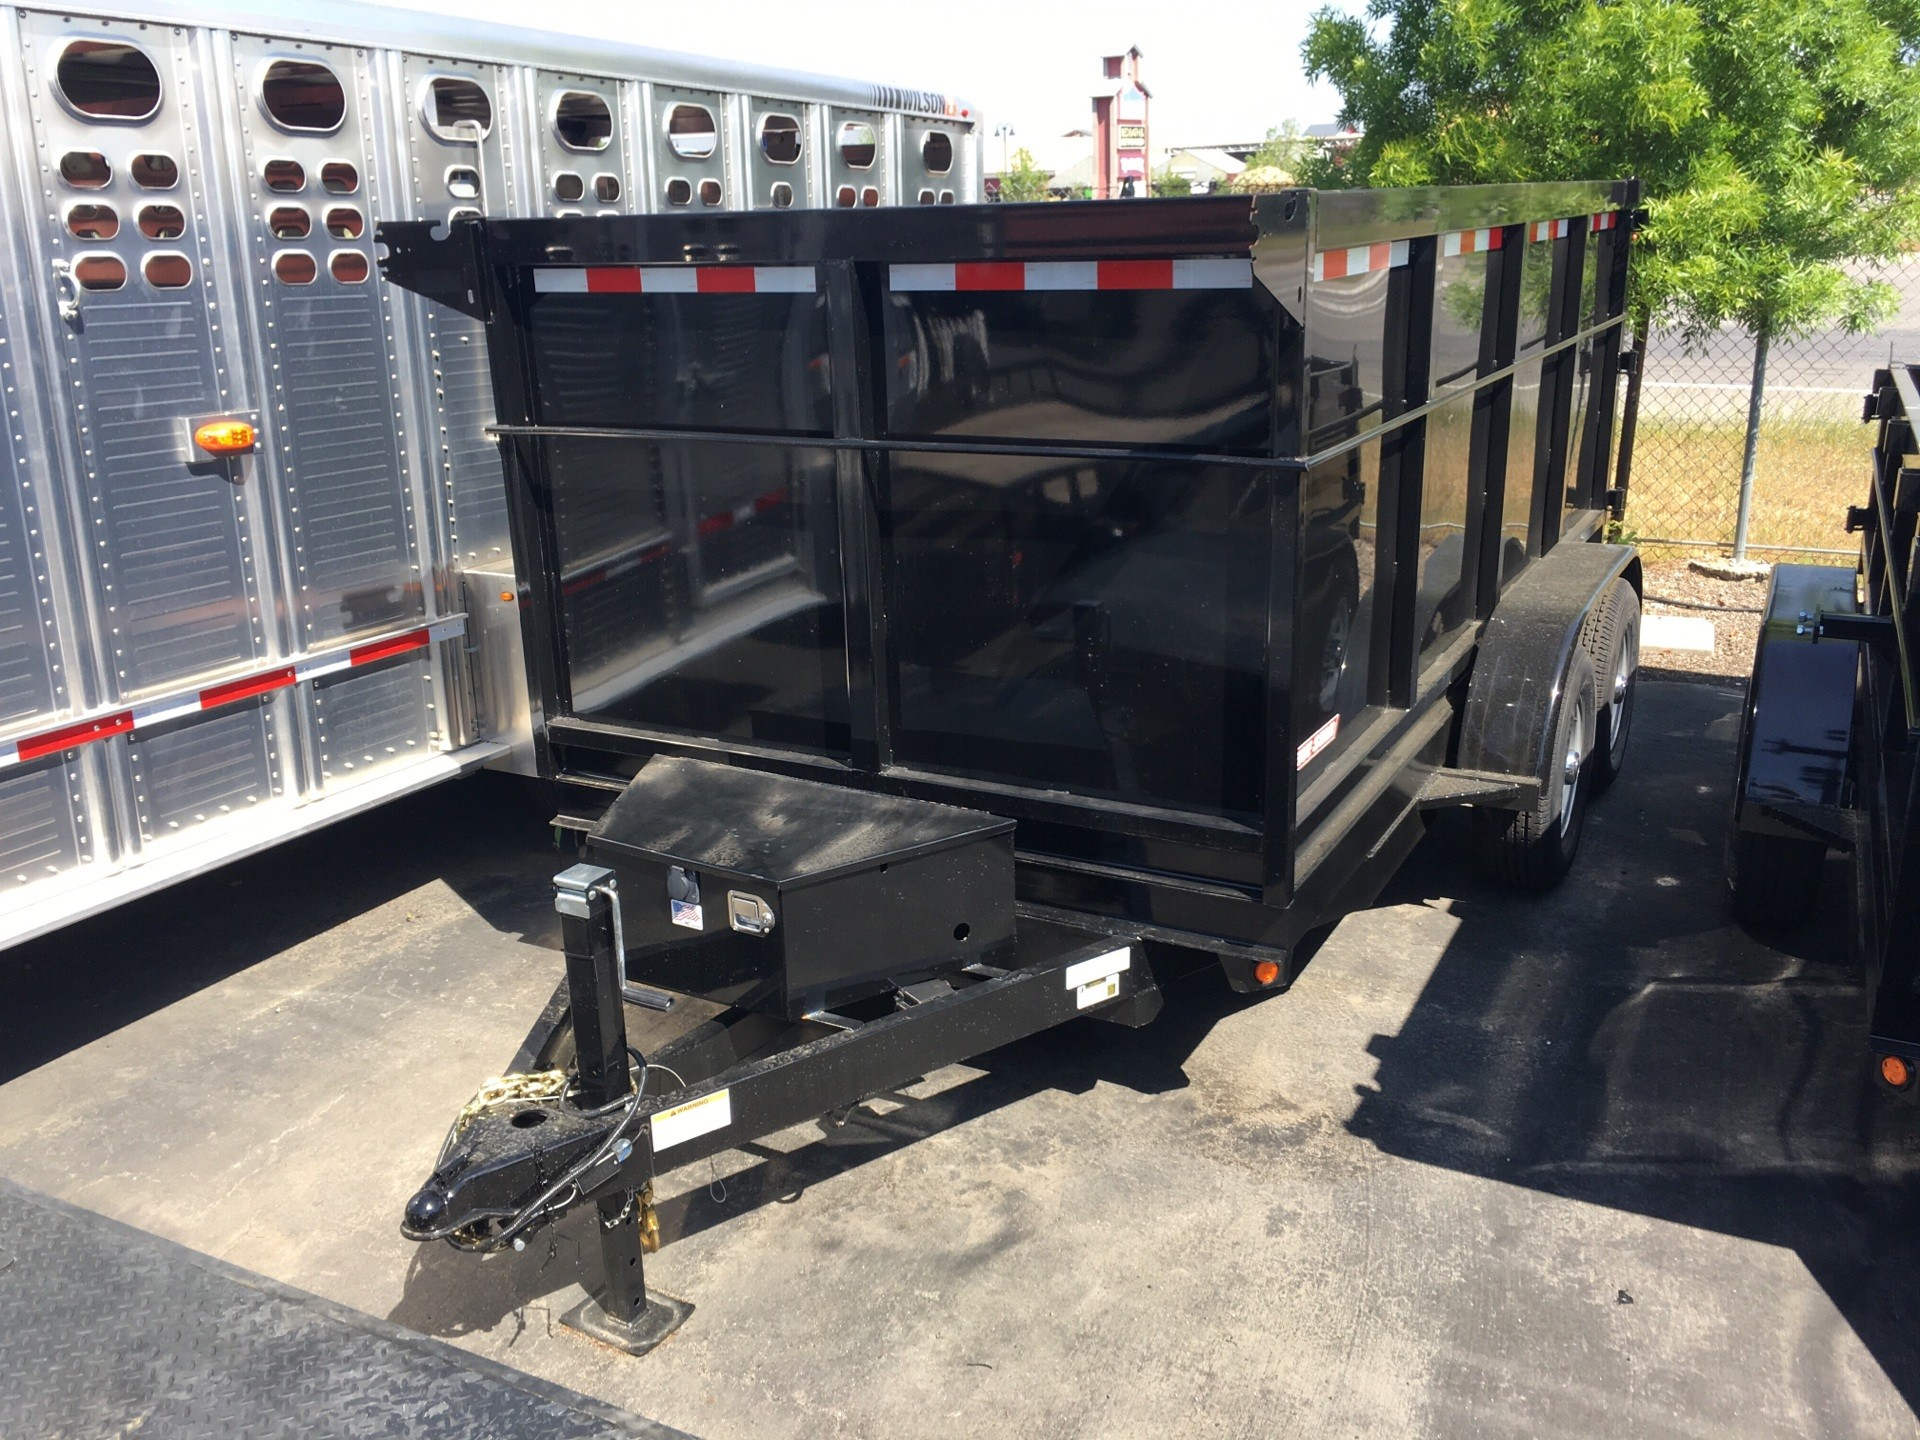 2018 FIVE STAR TRAILER MANUFACTURING, INC 12' DUMP TRAILER WITH 4' SIDES in Paso Robles, California